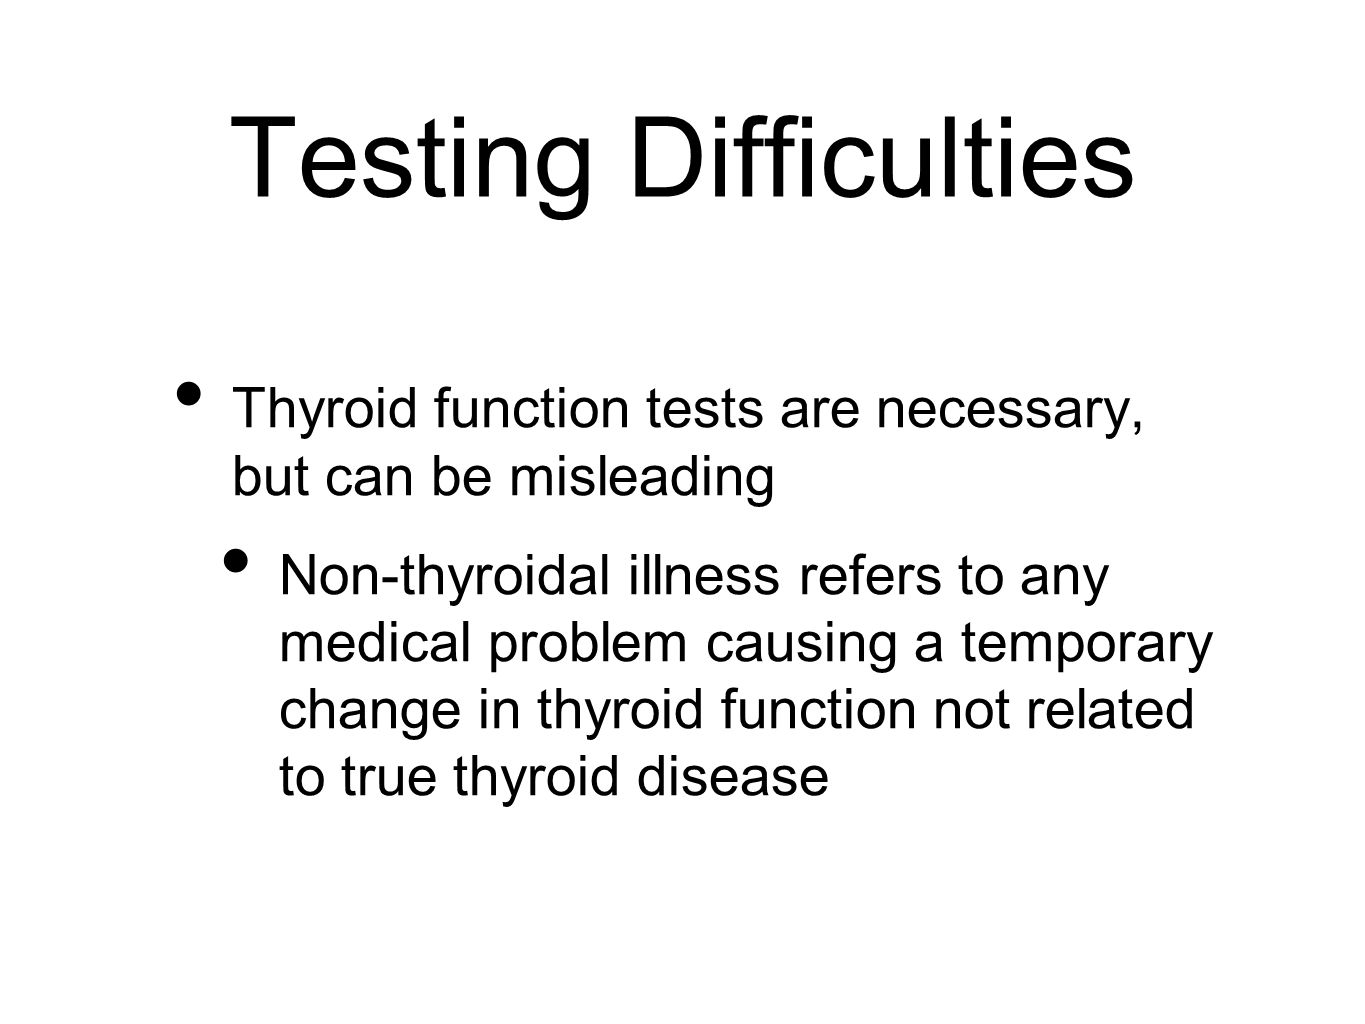 Testing Difficulties Thyroid function tests are necessary, but can be misleading.